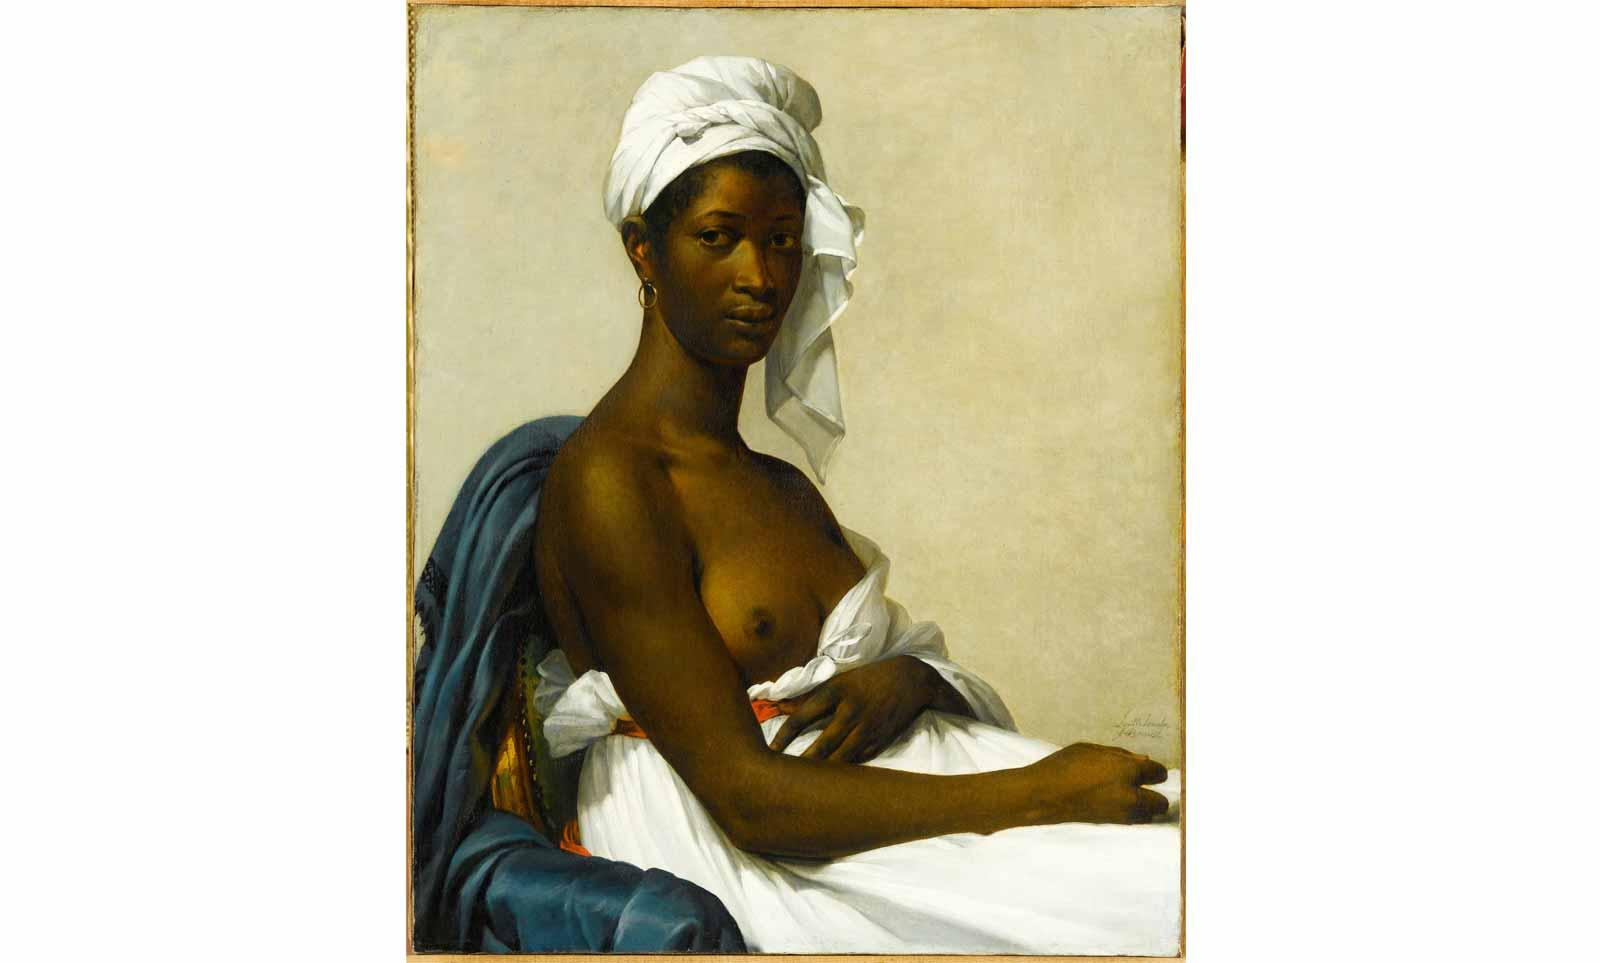 Marie Guillemine Benoist (1768-1826), Portrait of Madeleine, 1800. Also called Portrait of a black woman, presented at the Salon of 1800 under the title Portrait of a Negress